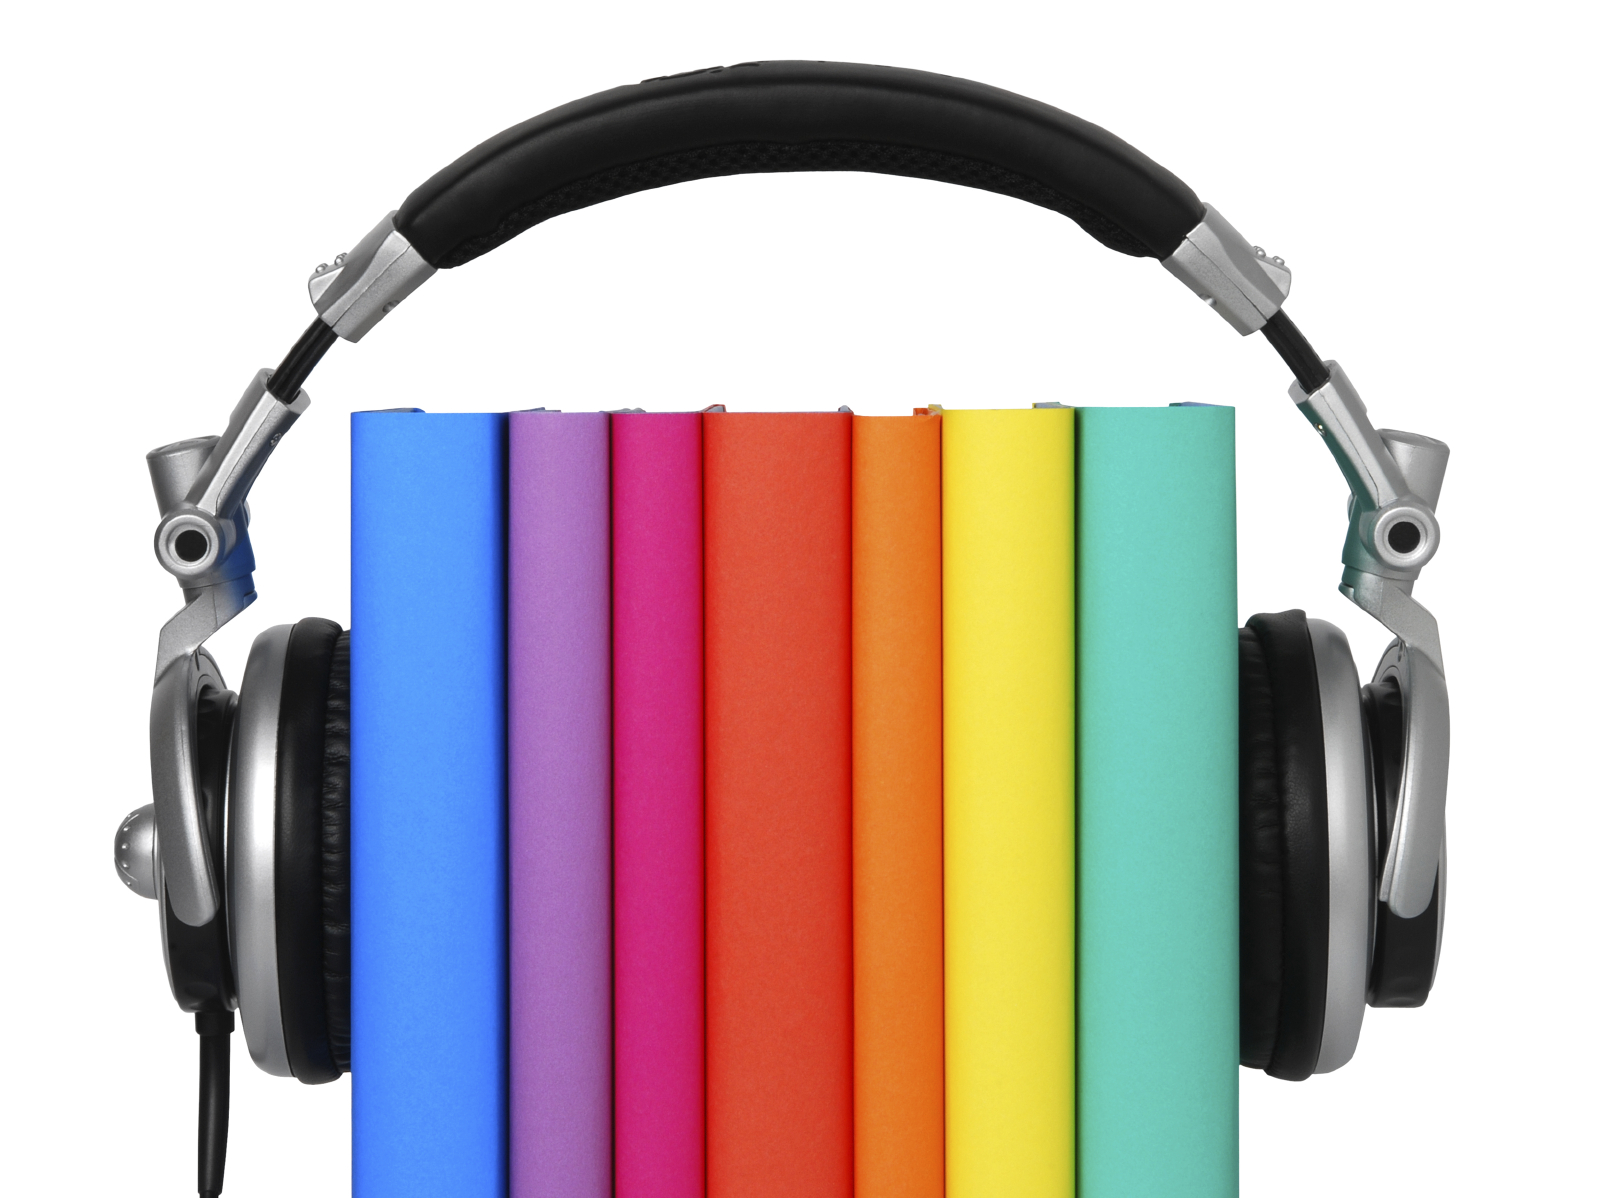 Audio Books as a Literacy Tool